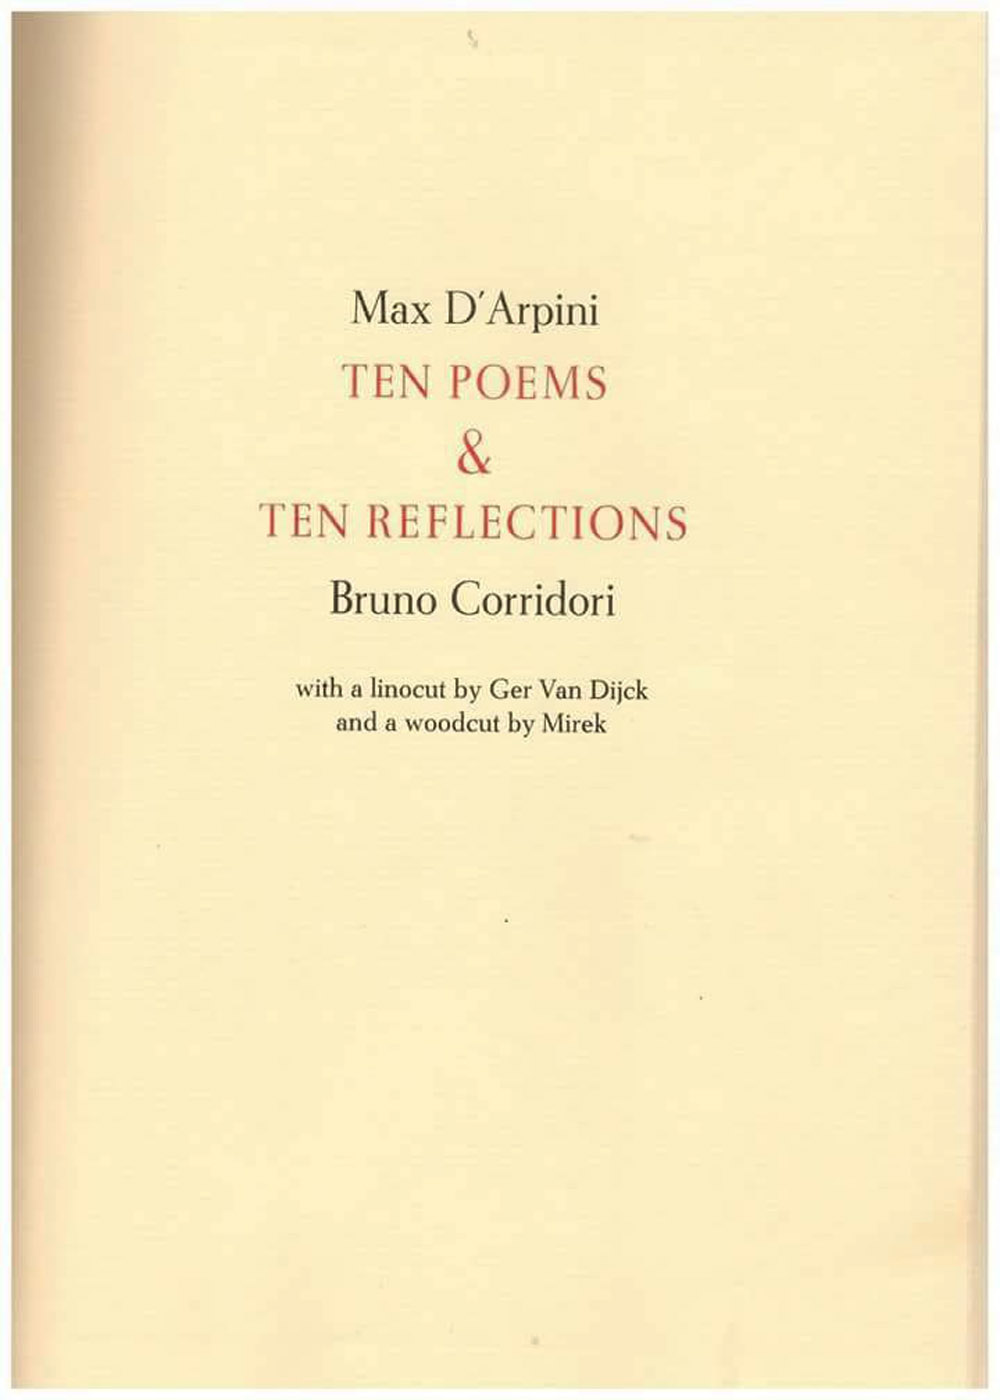 TEN POEMS & TEN REFLECTIONS